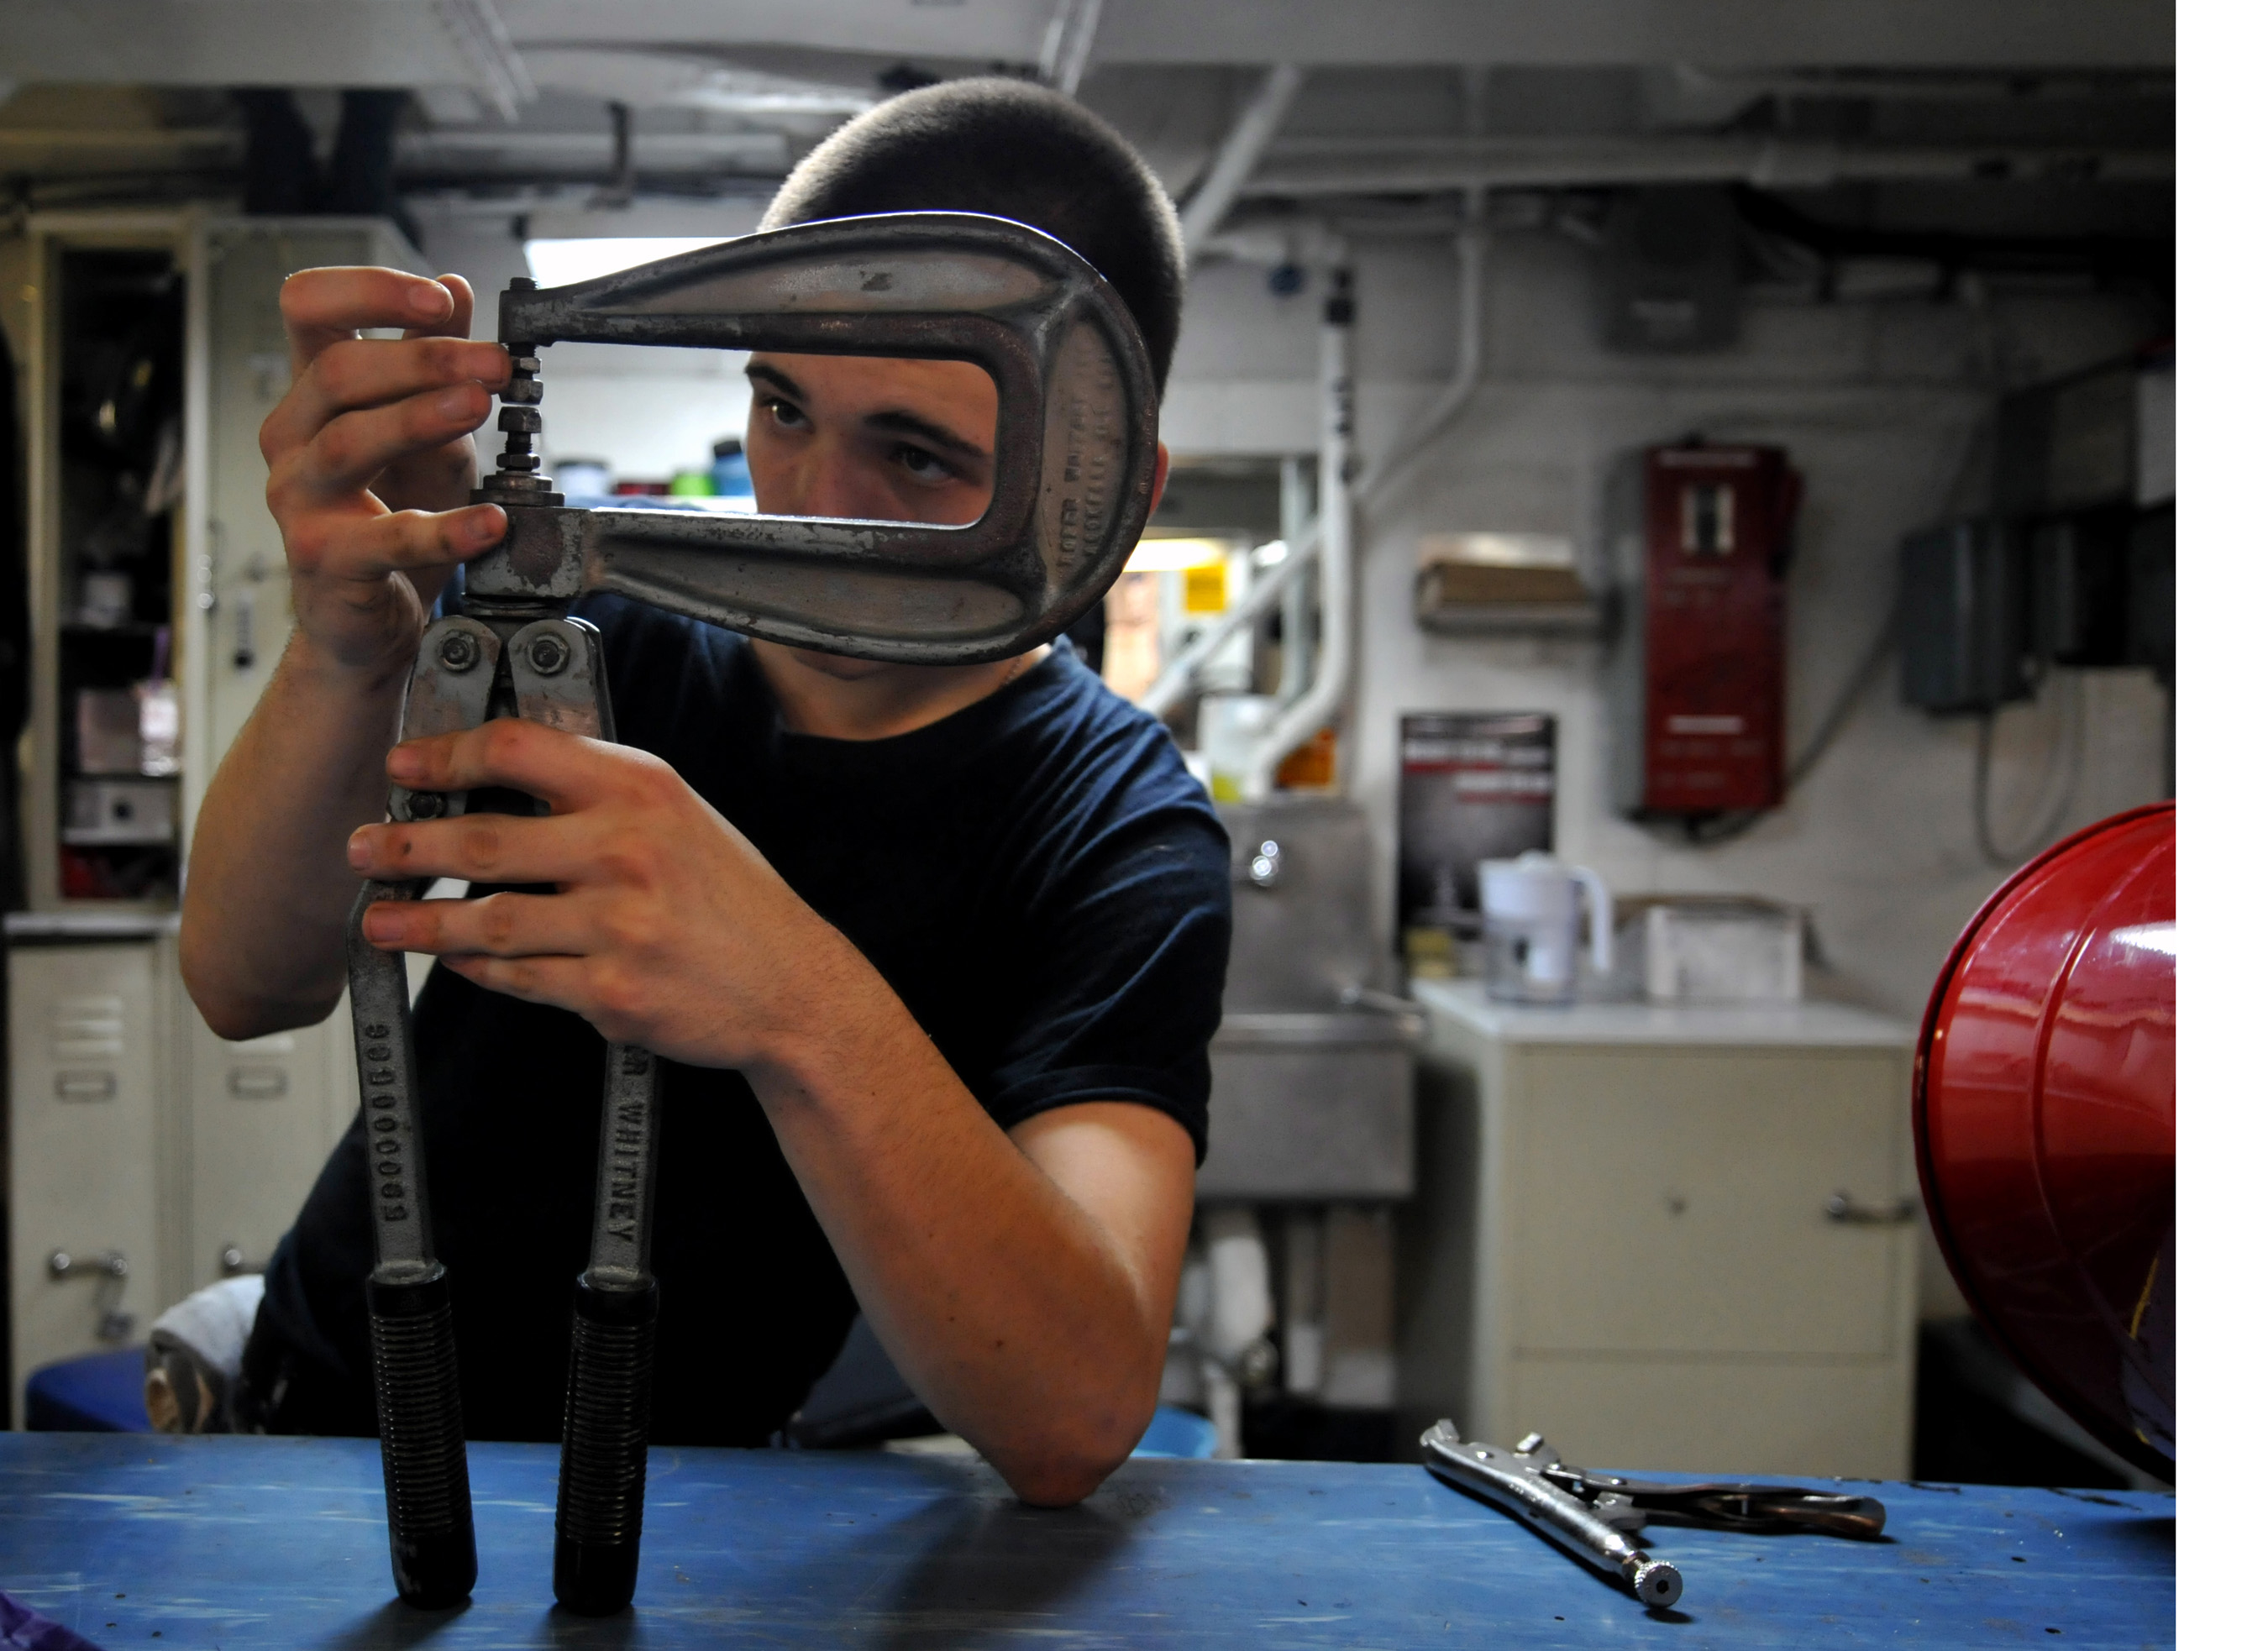 US Navy 120110-N-ZZ999-401 Airman Kaleb White adjusts a rivet squeezer while repairing a foreign object damage bucket